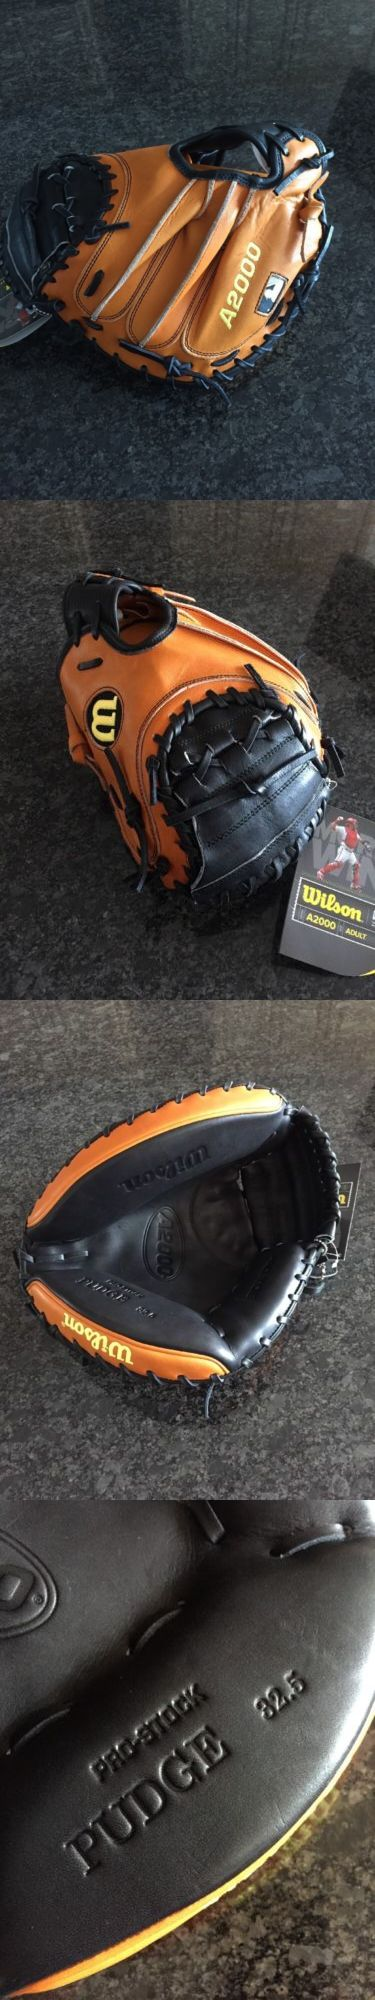 Gloves and Mitts 16030: Wilson A2000 Pudge 32.5 Pro Stock Catchers Mitt, Baseball Glove, Rh, New -> BUY IT NOW ONLY: $209.99 on eBay!